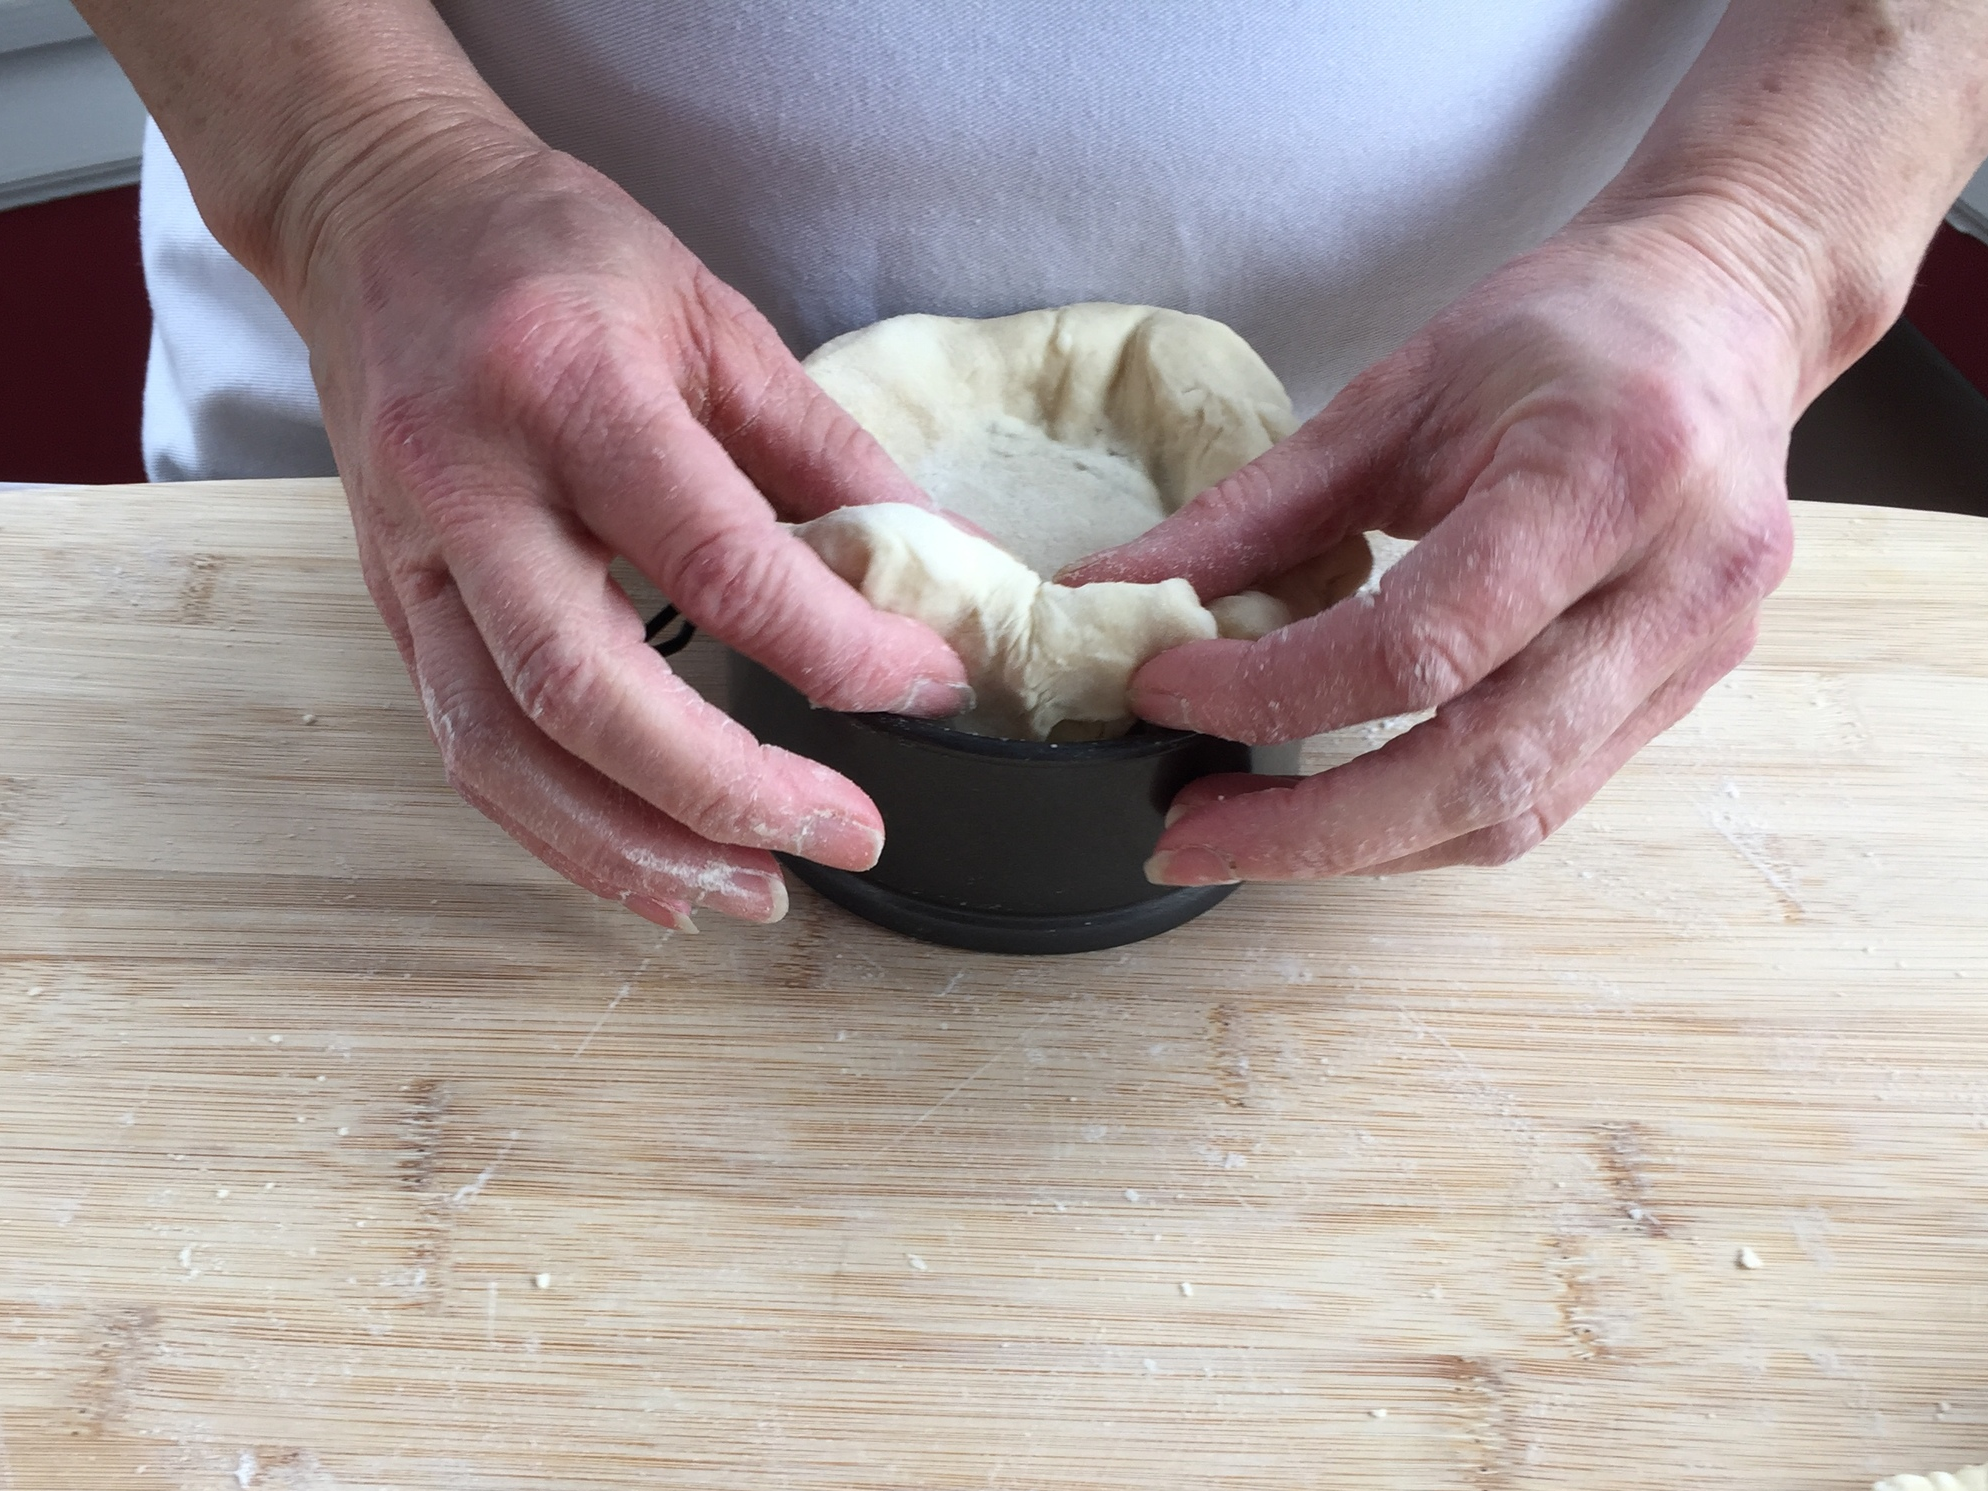 Rolling the edges under